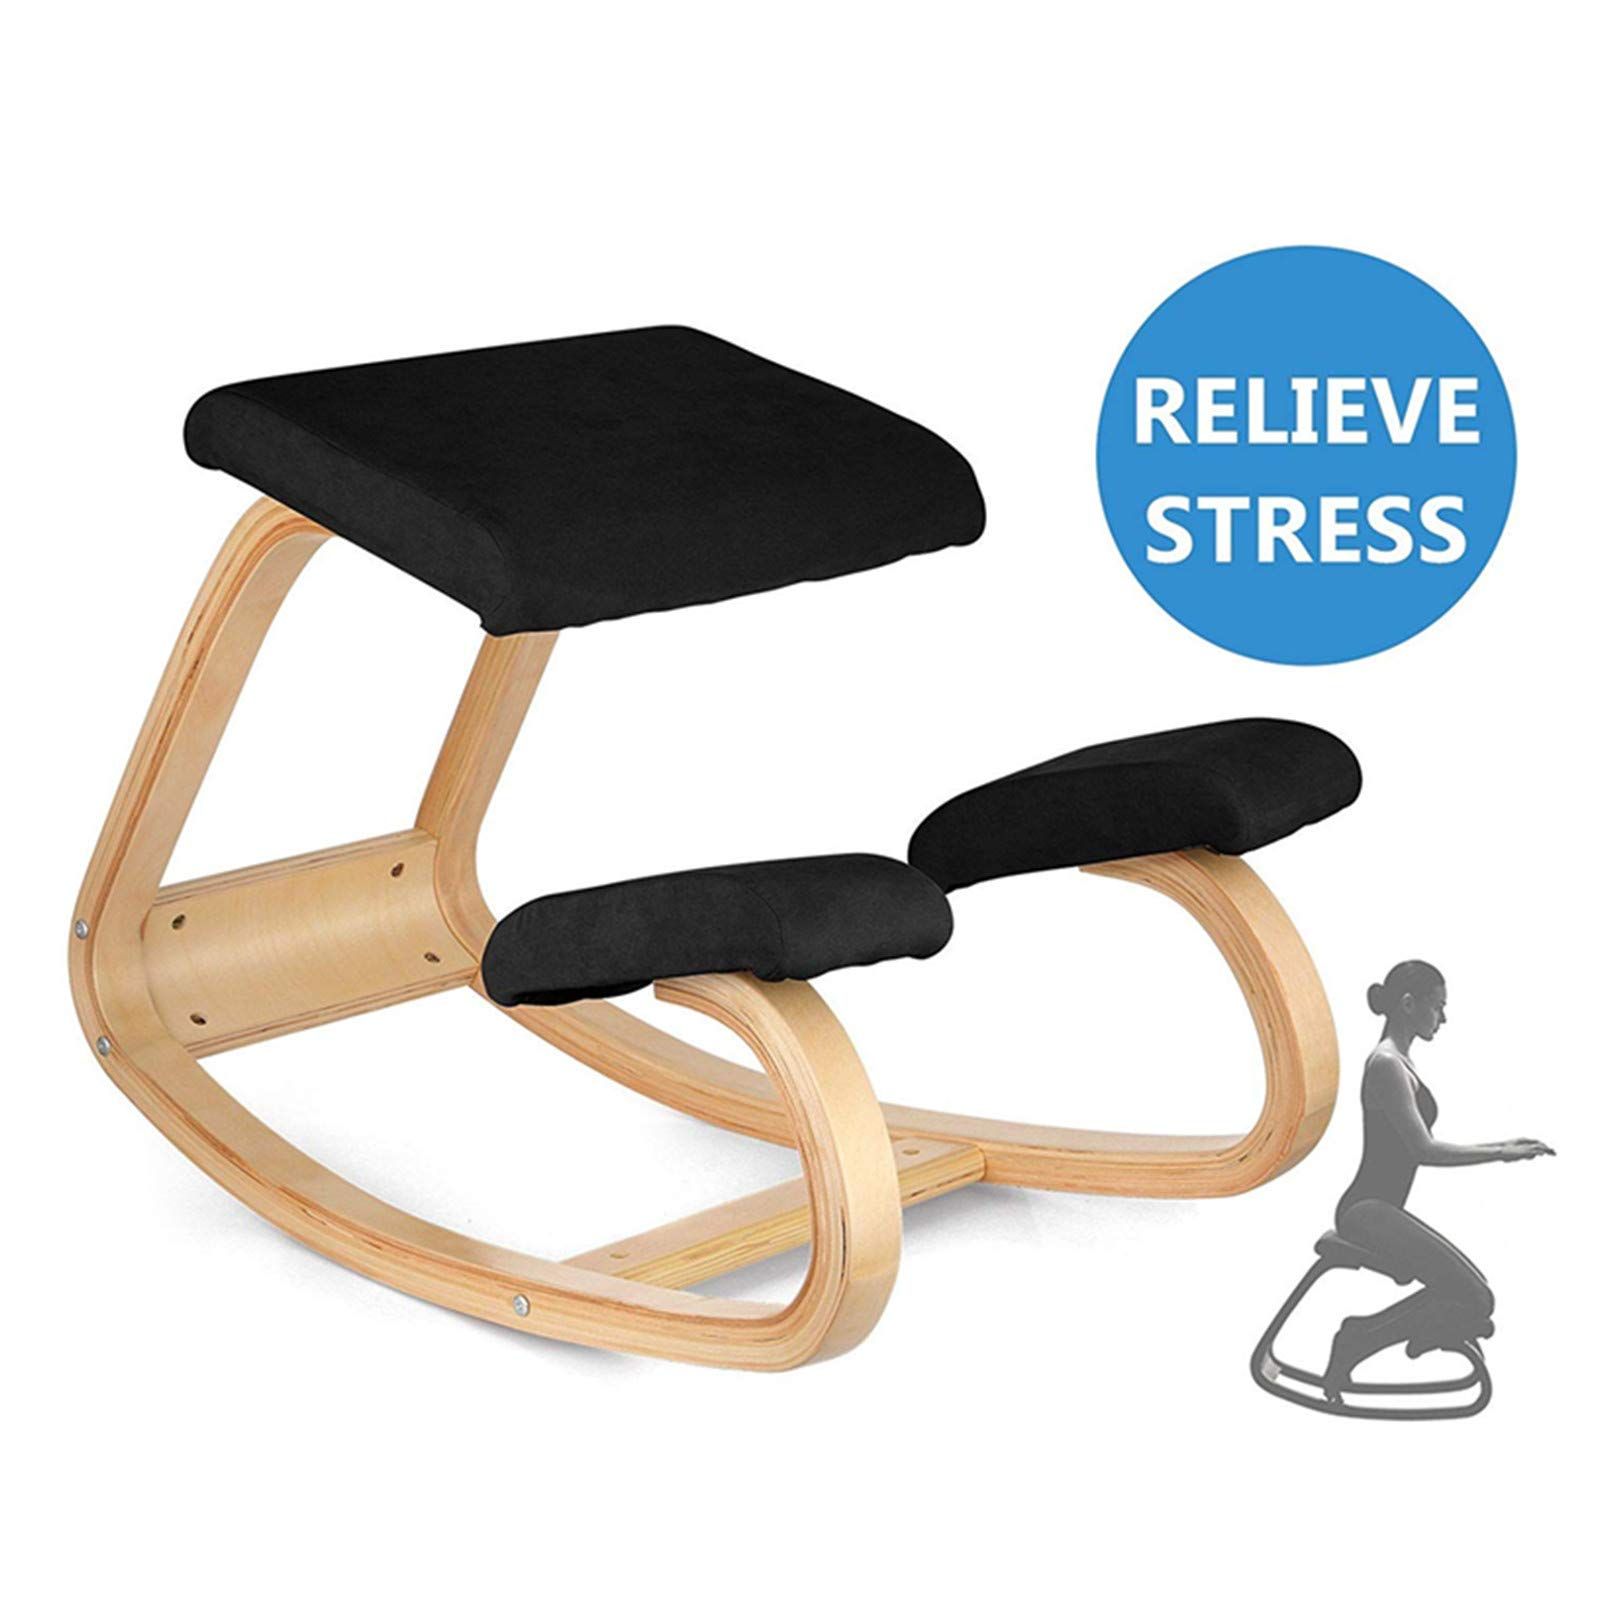 Happybuy Bentwood Ergonomic Kneeling Chair Office Home Black Comfortable Relieve Fatigue Kneeling Chair for Body Shaping Desk Computer Kneeling Chair Stool (Black)